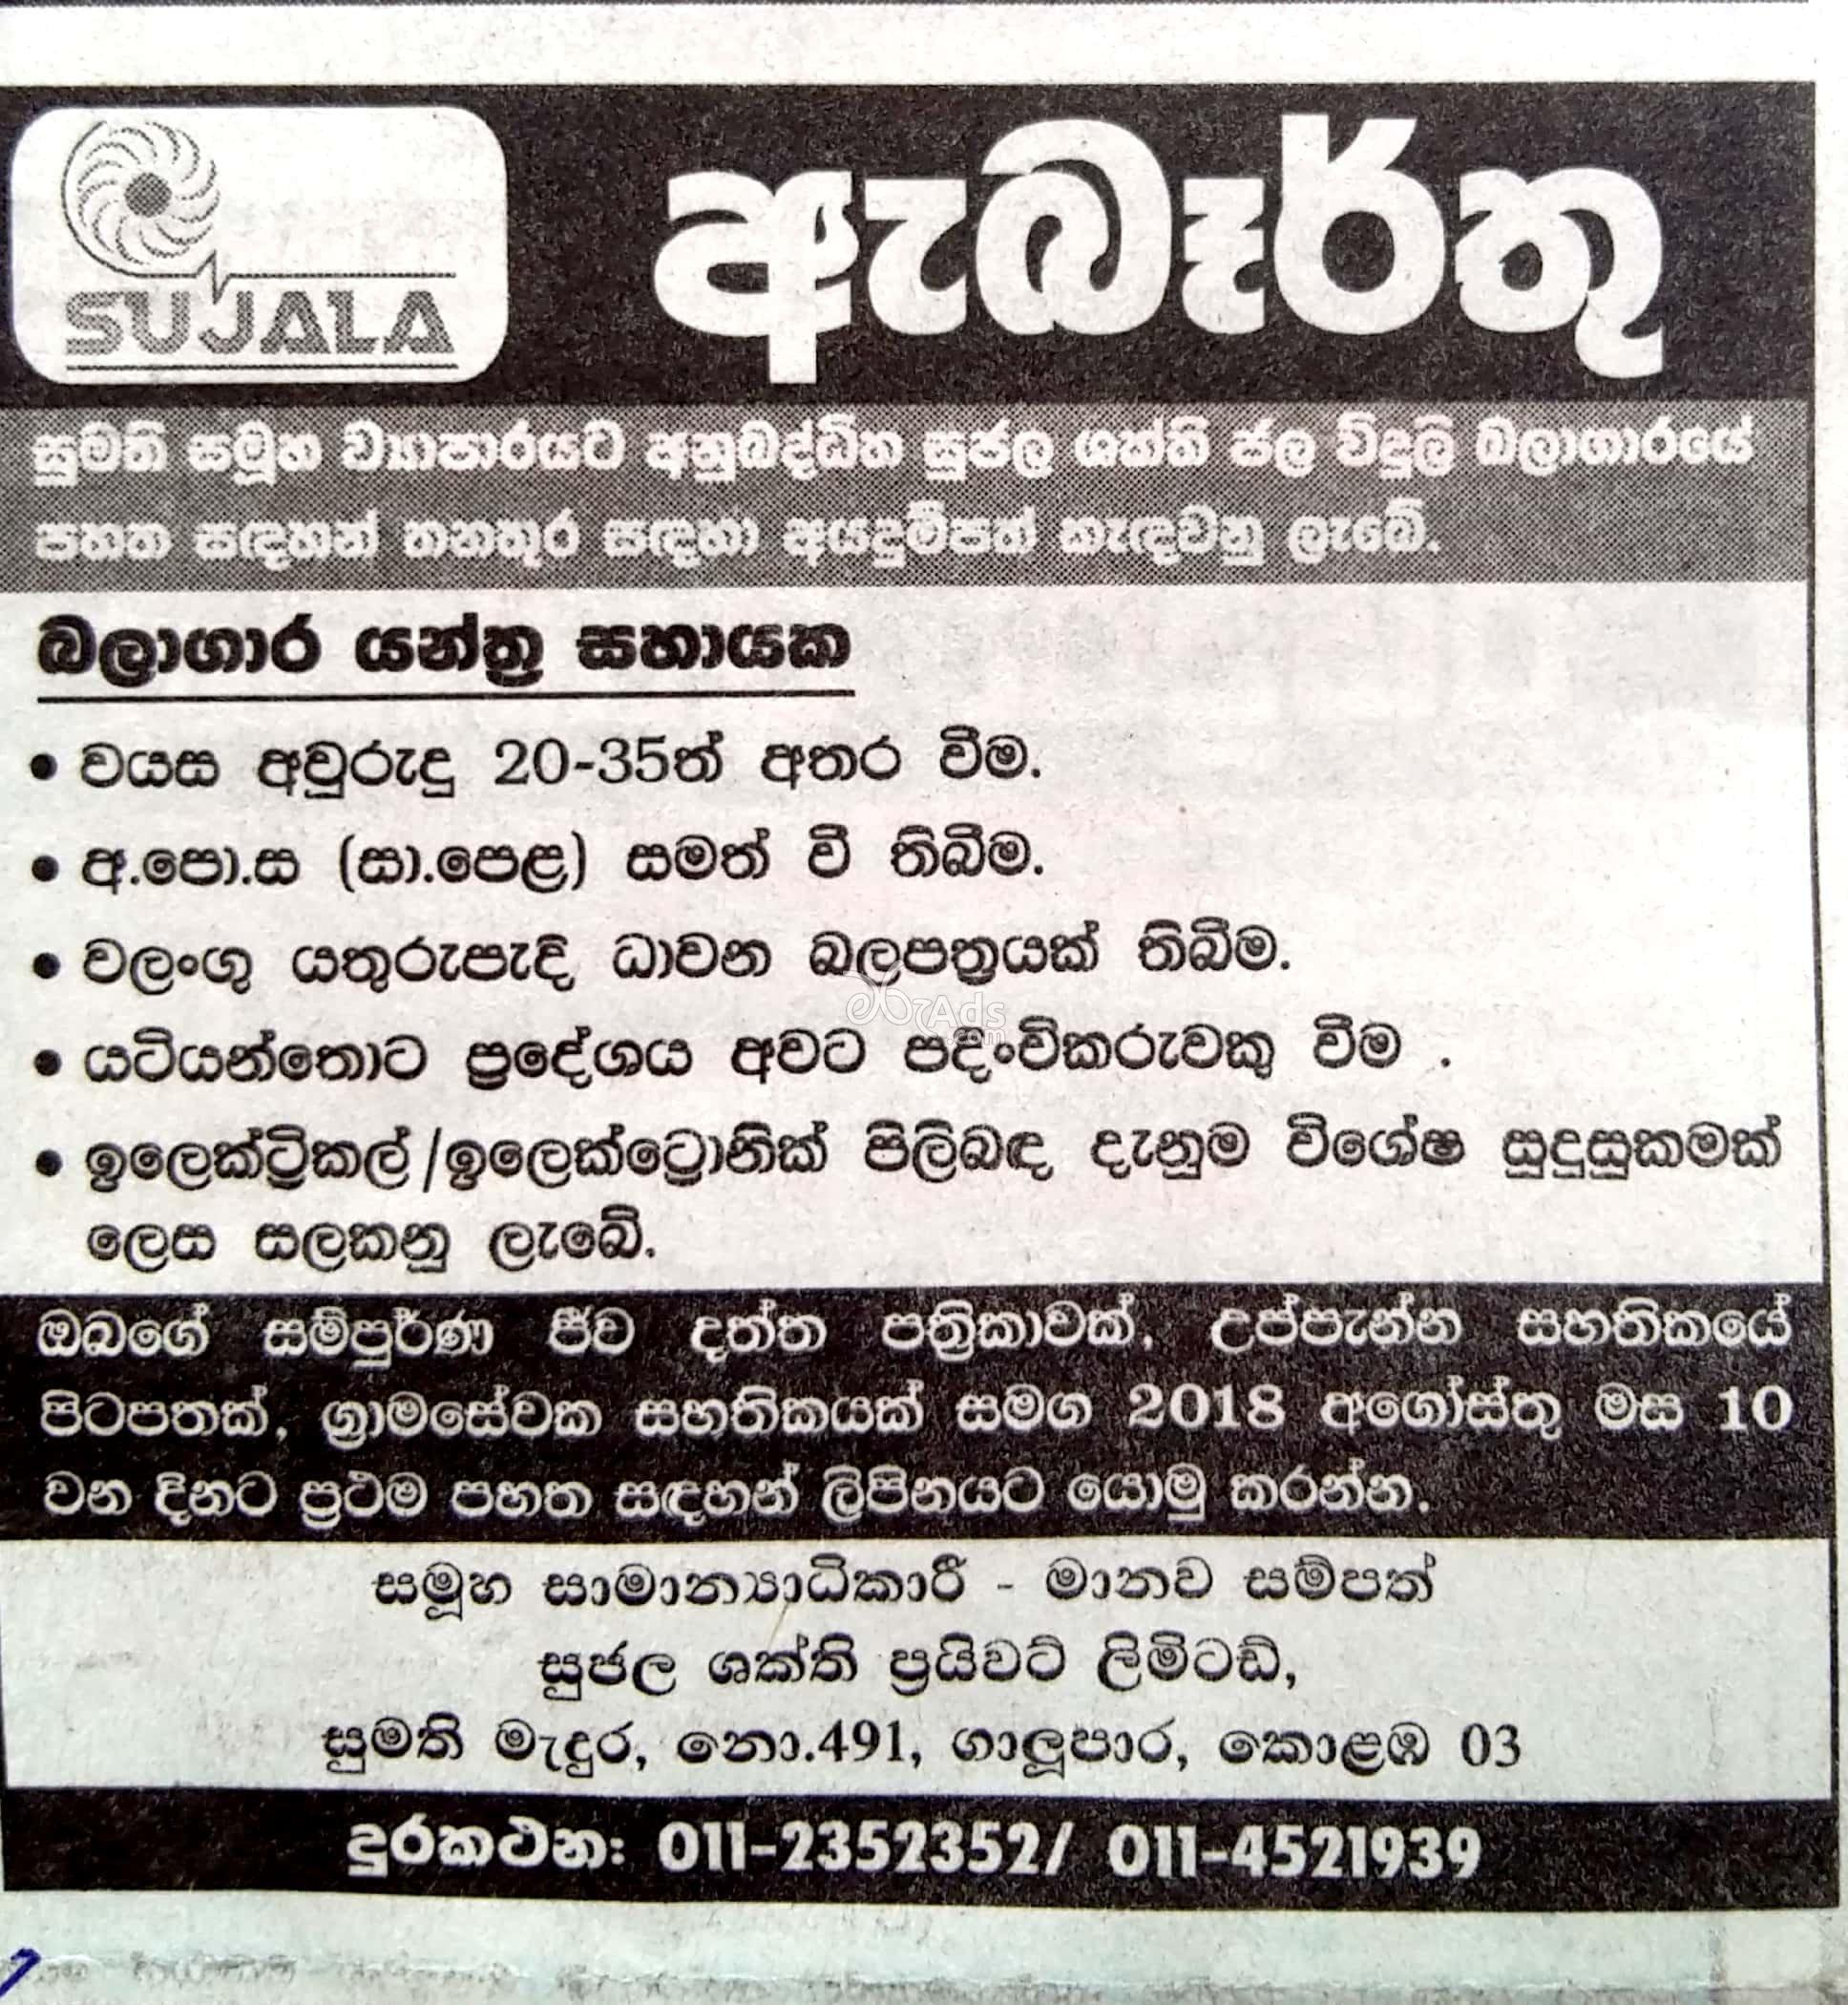 Electric Power Plant Machine Operators Job Vacancy at Sujala